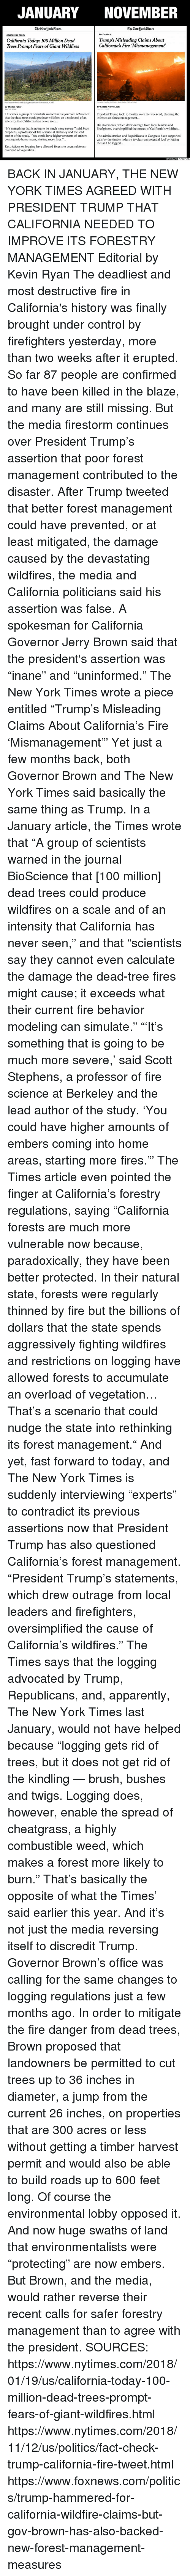 "hammered: JANUARY NOVEMBER  TheAew JJork Eimes  TheAewJjorkTimes  FACT CHECK  CALIFORNIA TODAY  California Today: 100 Million Dead  Trees Prompt Fears of Giant Wildfires  Trump's Misleading Claims About  California's Fire Mismanagement'  Patches of dead and dying trees near Cressman, Calif  By Thomas Fuller  lan. 19, 2018  By Kendra Pierre-Louis  This week a group of scientists warned in the journal BioScience President Trump took to Twitter over the weekend, blaming the  that the dead trees could produce wildfires on a scale and of an  infernos on forest management...  intensity that California has never seen  Stephens, a professor of fire science at Berkeley and the lead  coming into home areas, starting more fires.""..  Restrictions on logging have allowed forests to accumulate an  His statements, which drew outrage from local leaders and  It's something that is going to be much more severe,"" said Scott firefighters, oversimplified the causes of California's wildfires...  author of the study. ""You could have higher amounts of embers The administration and Republicans in Congress have supported  calls by the timber industry to clear out potential fuel by letting  the land be logged...  overload of vegetation.  Unbiased Amer BACK IN JANUARY, THE NEW YORK TIMES AGREED WITH PRESIDENT TRUMP THAT CALIFORNIA NEEDED TO IMPROVE ITS FORESTRY MANAGEMENT  Editorial by Kevin Ryan  The deadliest and most destructive fire in California's history was finally brought under control by firefighters yesterday, more than two weeks after it erupted.  So far 87 people are confirmed to have been killed in the blaze, and many are still missing.  But the media firestorm continues over President Trump's assertion that poor forest management contributed to the disaster.  After Trump tweeted that better forest management could have prevented, or at least mitigated, the damage caused by the devastating wildfires, the media and California politicians said his assertion was false.  A spokesman for California Governor Jerry Brown said that the president's assertion was ""inane"" and ""uninformed.""  The New York Times wrote a piece entitled ""Trump's Misleading Claims About California's Fire 'Mismanagement'""  Yet just a few months back, both Governor Brown and The New York Times said basically the same thing as Trump.  In a January article, the Times wrote that ""A group of scientists warned in the journal BioScience that [100 million] dead trees could produce wildfires on a scale and of an intensity that California has never seen,"" and that ""scientists say they cannot even calculate the damage the dead-tree fires might cause; it exceeds what their current fire behavior modeling can simulate.""  ""'It's something that is going to be much more severe,' said Scott Stephens, a professor of fire science at Berkeley and the lead author of the study. 'You could have higher amounts of embers coming into home areas, starting more fires.'""  The Times article even pointed the finger at California's forestry regulations, saying ""California forests are much more vulnerable now because, paradoxically, they have been better protected. In their natural state, forests were regularly thinned by fire but the billions of dollars that the state spends aggressively fighting wildfires and restrictions on logging have allowed forests to accumulate an overload of vegetation… That's a scenario that could nudge the state into rethinking its forest management.""  And yet, fast forward to today, and The New York Times is suddenly interviewing ""experts"" to contradict its previous assertions now that President Trump has also questioned California's forest management.  ""President Trump's statements, which drew outrage from local leaders and firefighters, oversimplified the cause of California's wildfires."" The Times says that the logging advocated by Trump, Republicans, and, apparently, The New York Times last January, would not have helped because ""logging gets rid of trees, but it does not get rid of the kindling — brush, bushes and twigs. Logging does, however, enable the spread of cheatgrass, a highly combustible weed, which makes a forest more likely to burn.""  That's basically the opposite of what the Times' said earlier this year.  And it's not just the media reversing itself to discredit Trump.  Governor Brown's office was calling for the same changes to logging regulations just a few months ago.  In order to mitigate the fire danger from dead trees, Brown proposed that landowners be permitted to cut trees up to 36 inches in diameter, a jump from the current 26 inches, on properties that are 300 acres or less without getting a timber harvest permit and would also be able to build roads up to 600 feet long.  Of course the environmental lobby opposed it.  And now huge swaths of land that environmentalists were ""protecting"" are now embers.  But Brown, and the media, would rather reverse their recent calls for safer forestry management than to agree with the president.    SOURCES: https://www.nytimes.com/2018/01/19/us/california-today-100-million-dead-trees-prompt-fears-of-giant-wildfires.html https://www.nytimes.com/2018/11/12/us/politics/fact-check-trump-california-fire-tweet.html https://www.foxnews.com/politics/trump-hammered-for-california-wildfire-claims-but-gov-brown-has-also-backed-new-forest-management-measures"